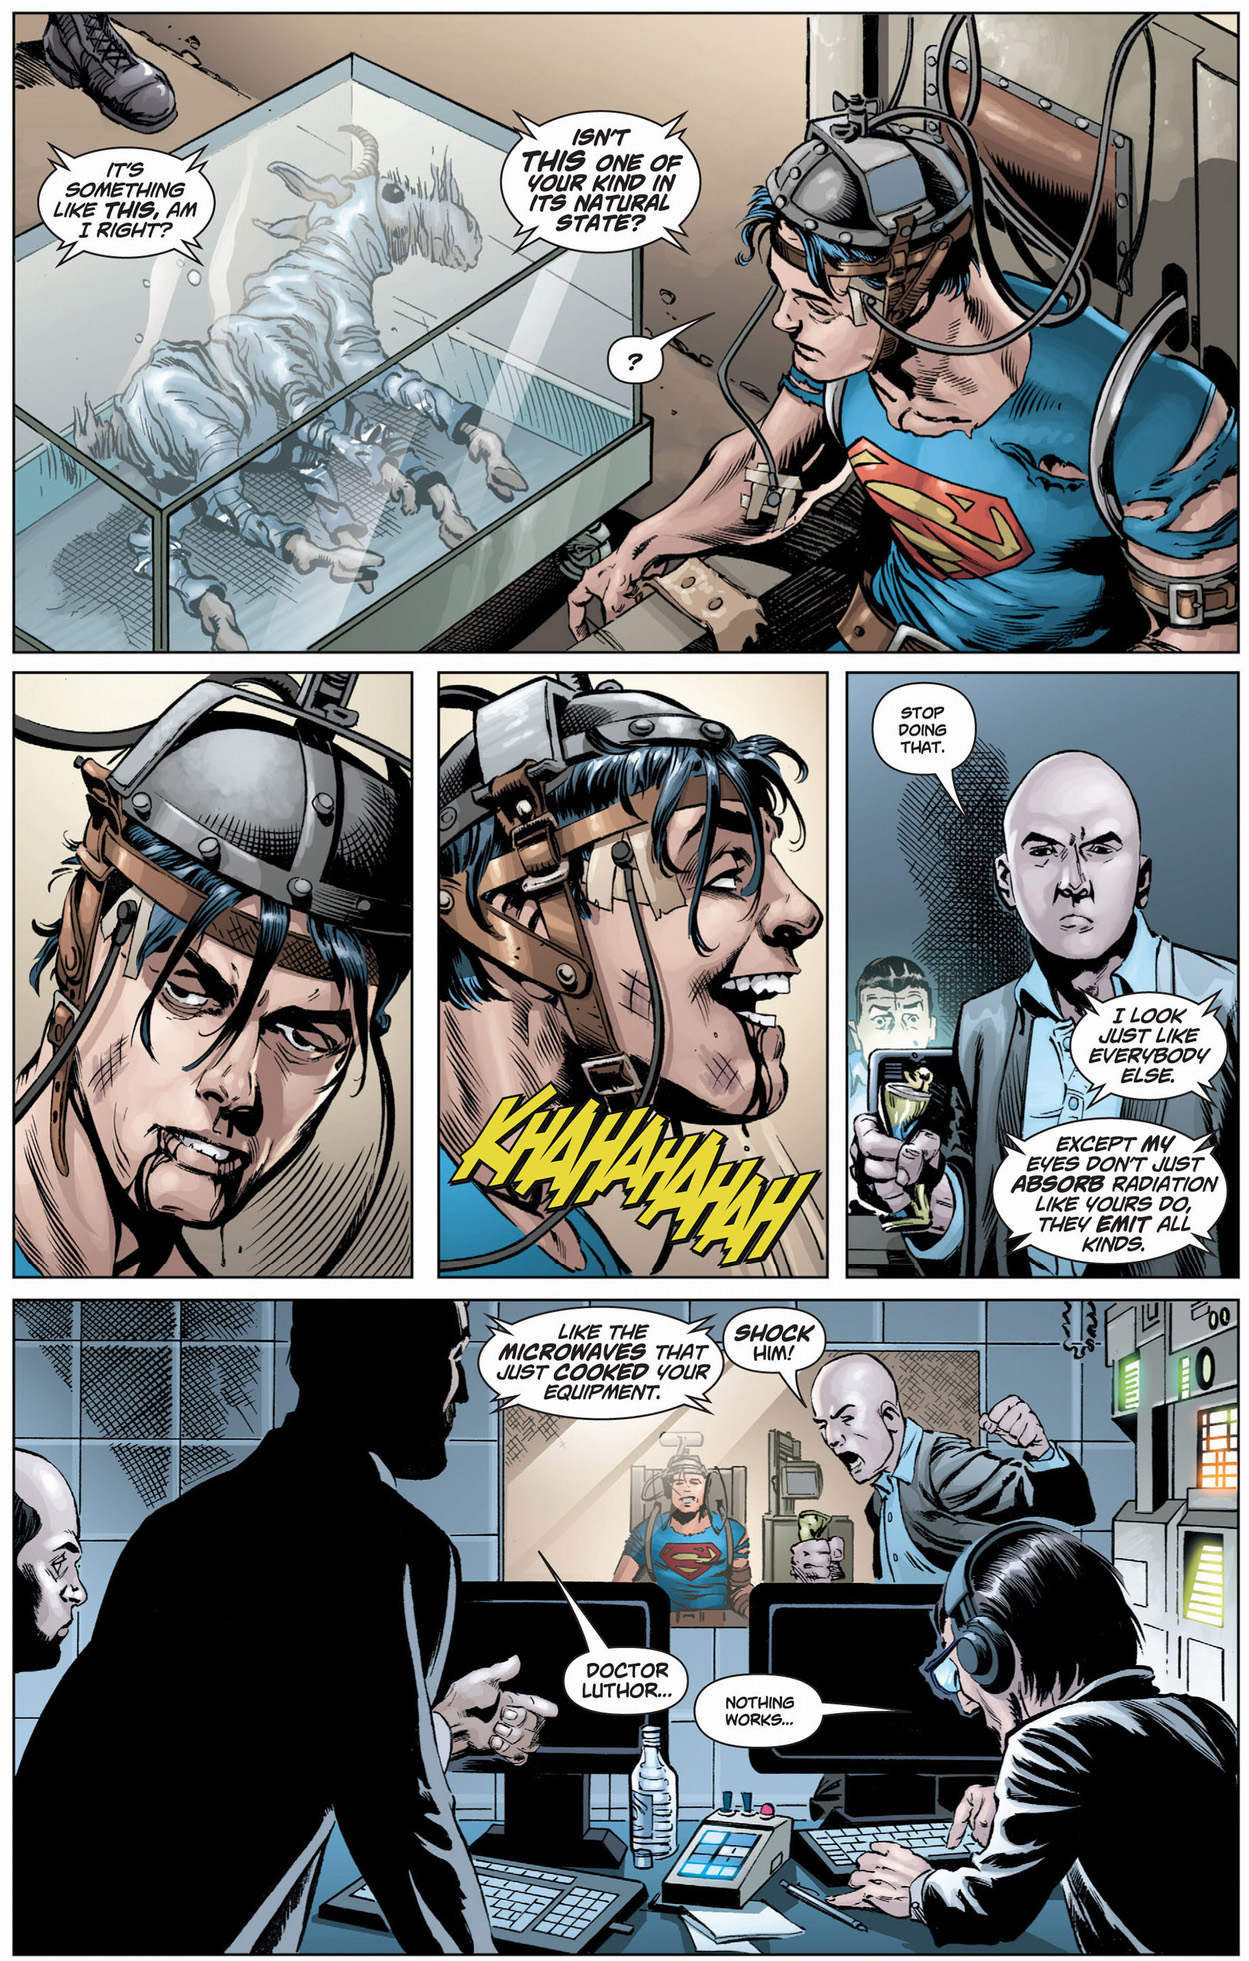 lex luthor's theory on superman's real form